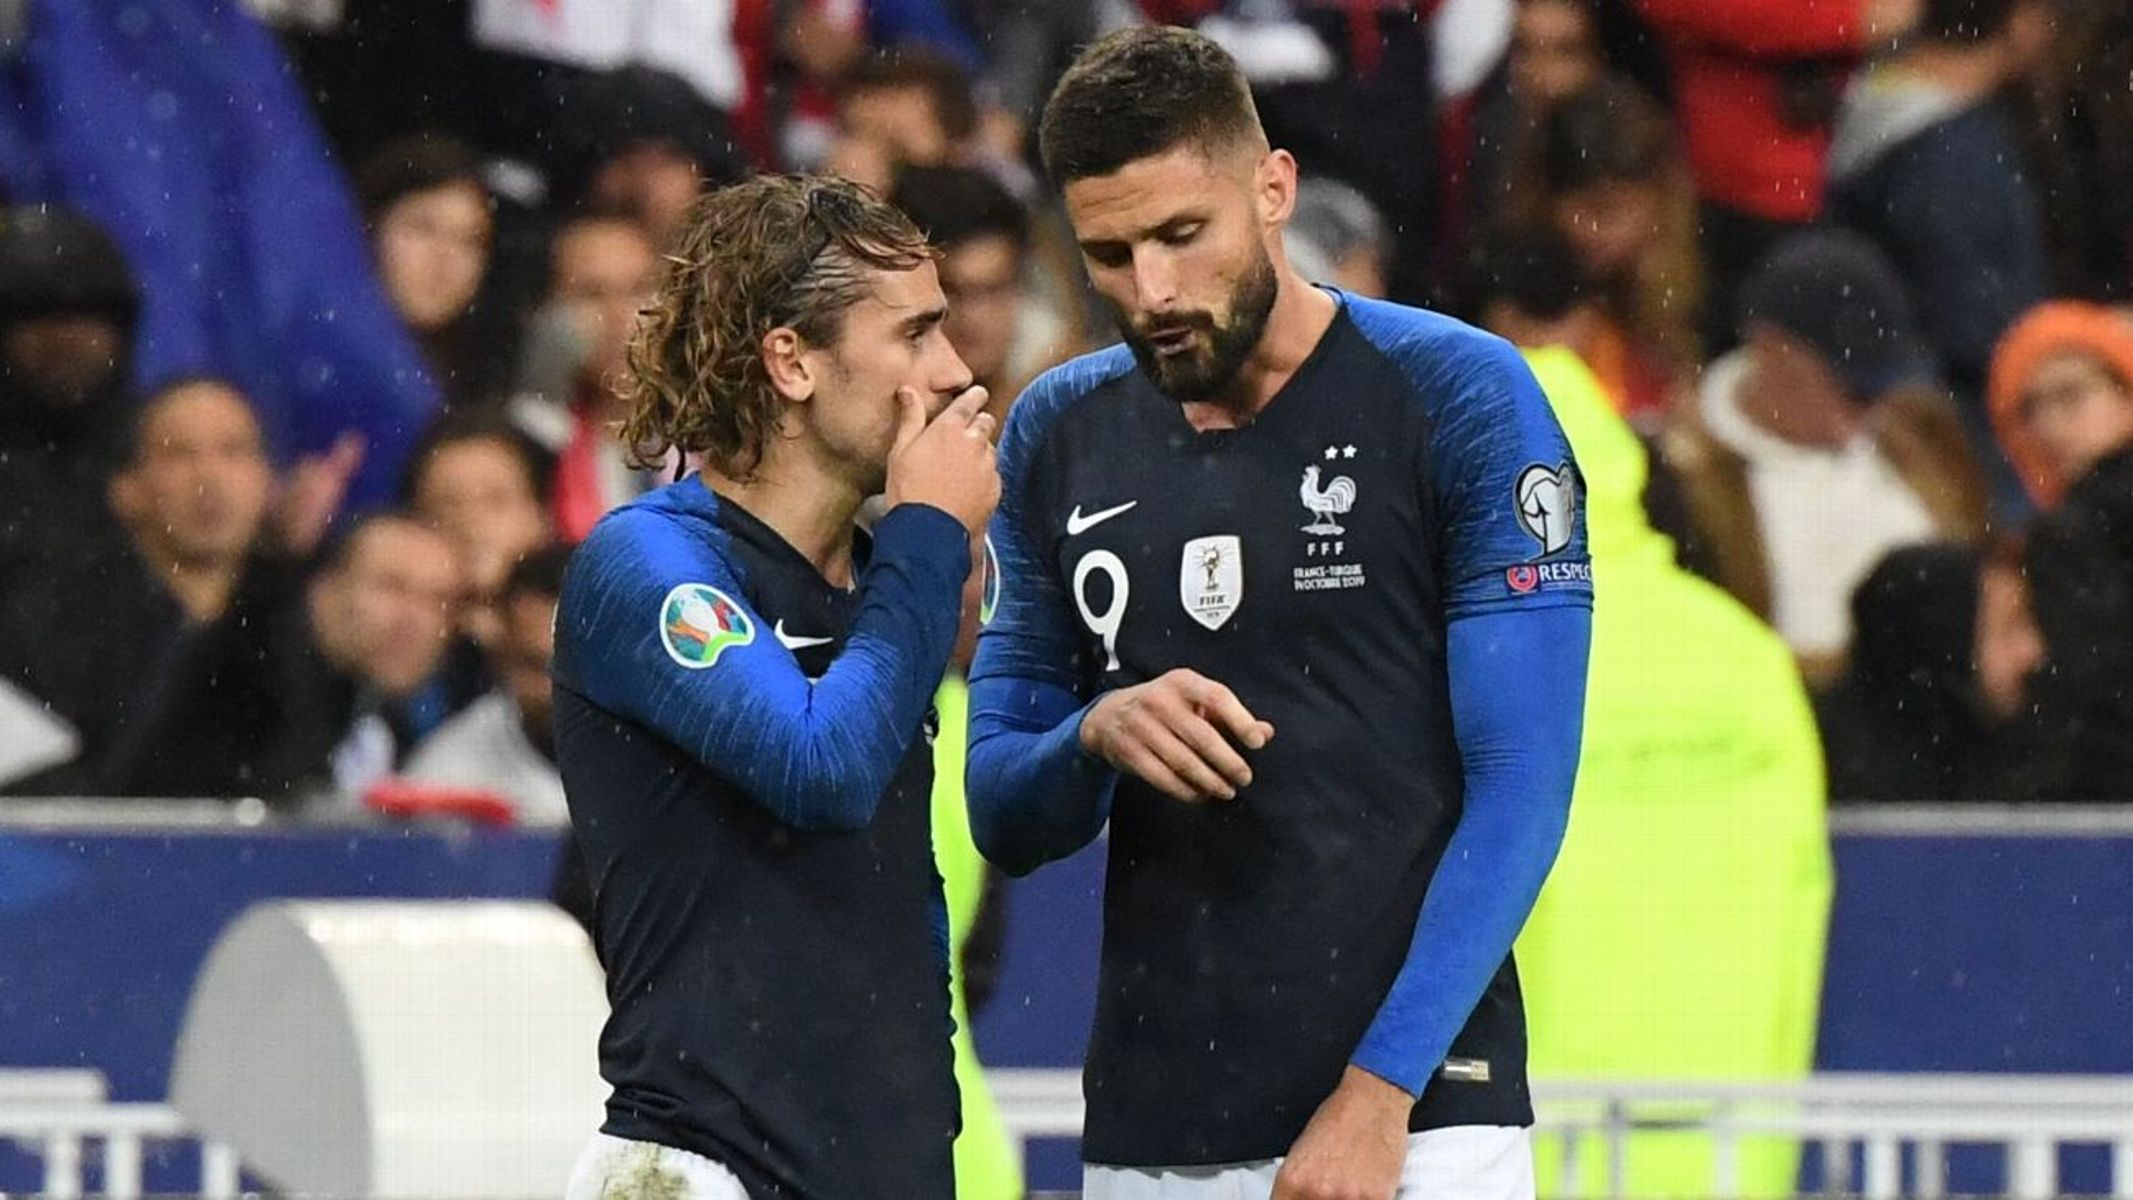 Griezmann defends Giroud in Benzema row